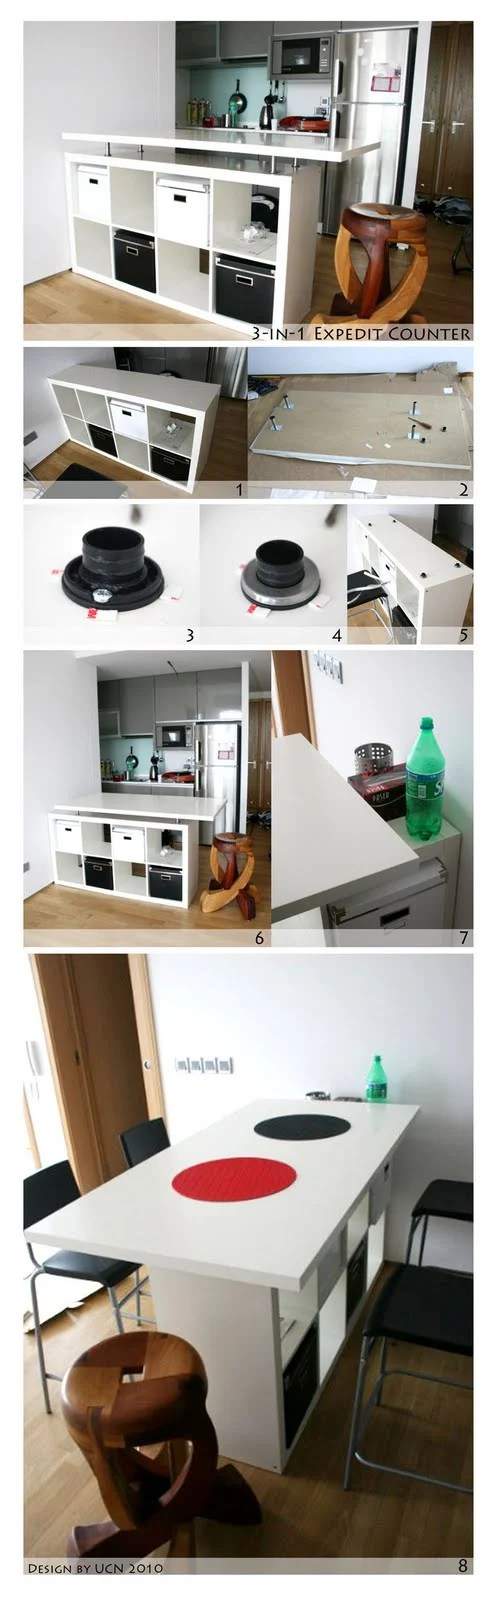 Expedit Kitchen Counter To Fulfill 3 In 1 Functions Ikea Hackers